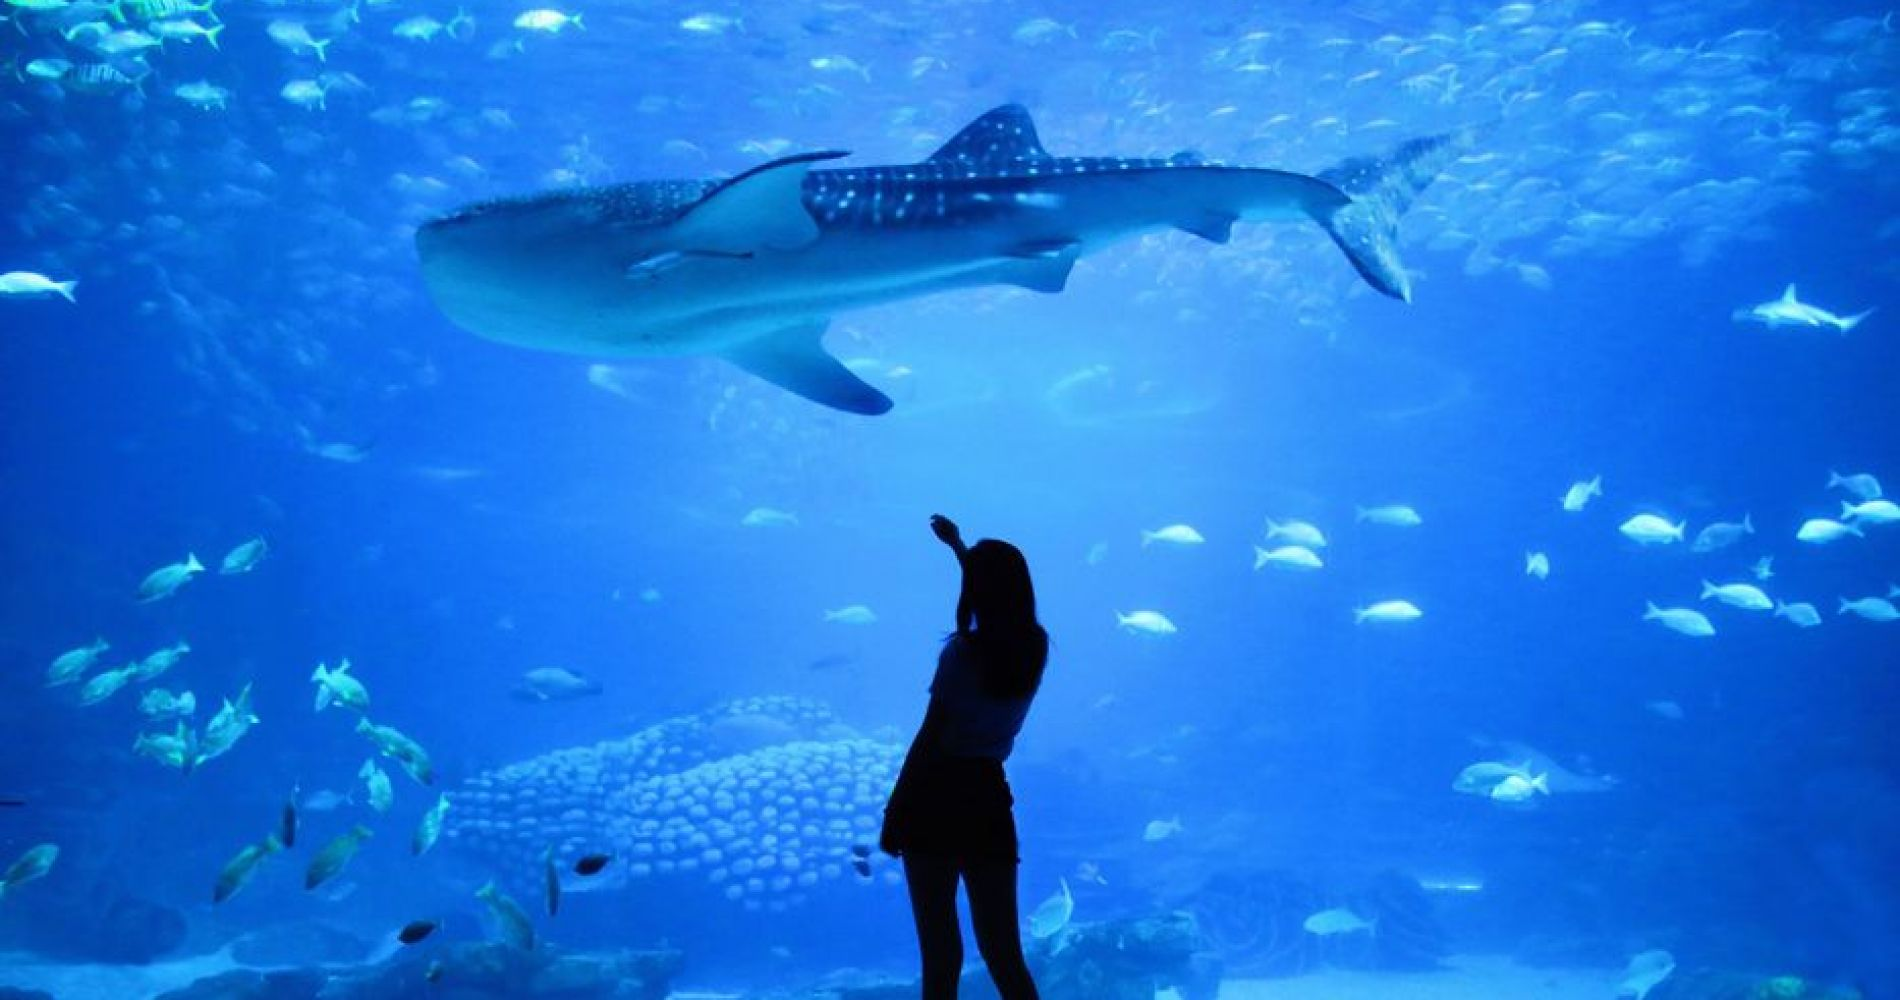 Parent and Child day at Winelands and Aquarium in Cape Town